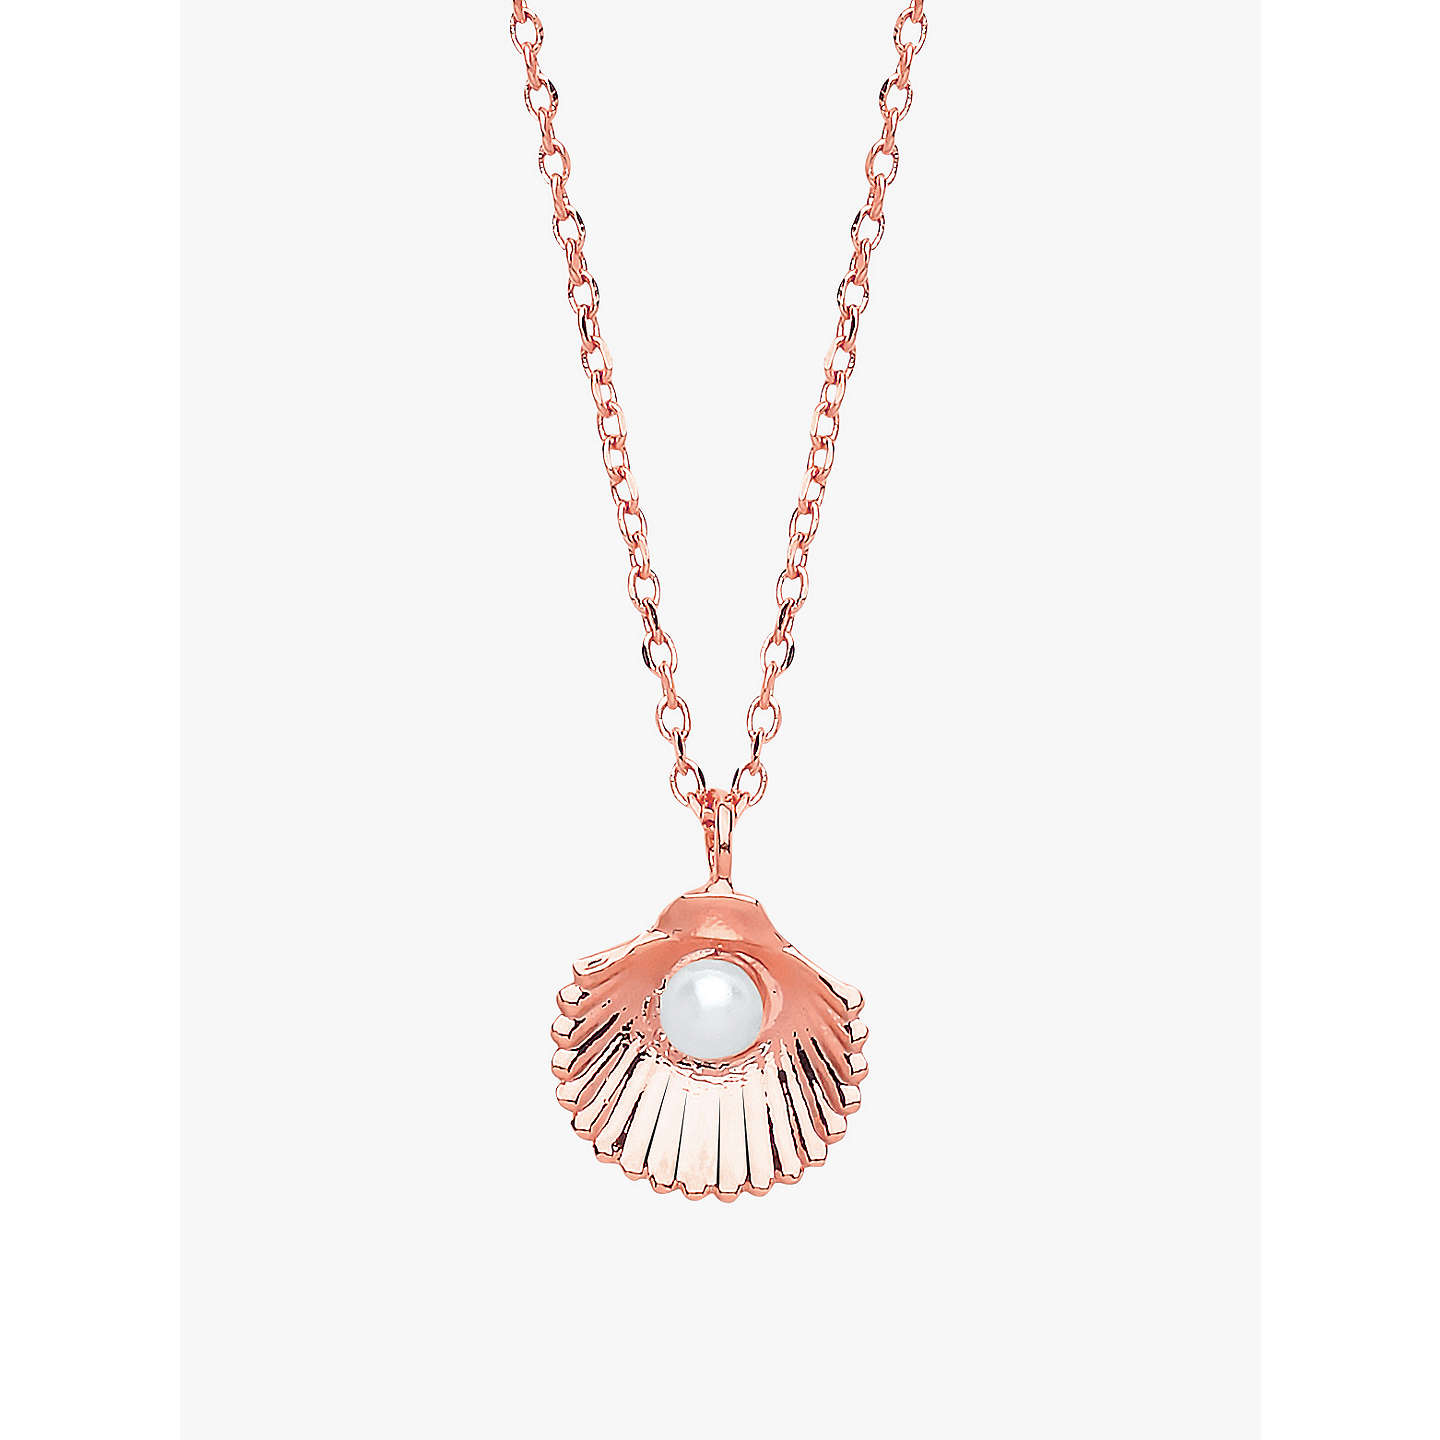 Estella bartlett shell freshwater pearl pendant necklace rose gold buyestella bartlett shell freshwater pearl pendant necklace rose gold online at johnlewis mozeypictures Gallery